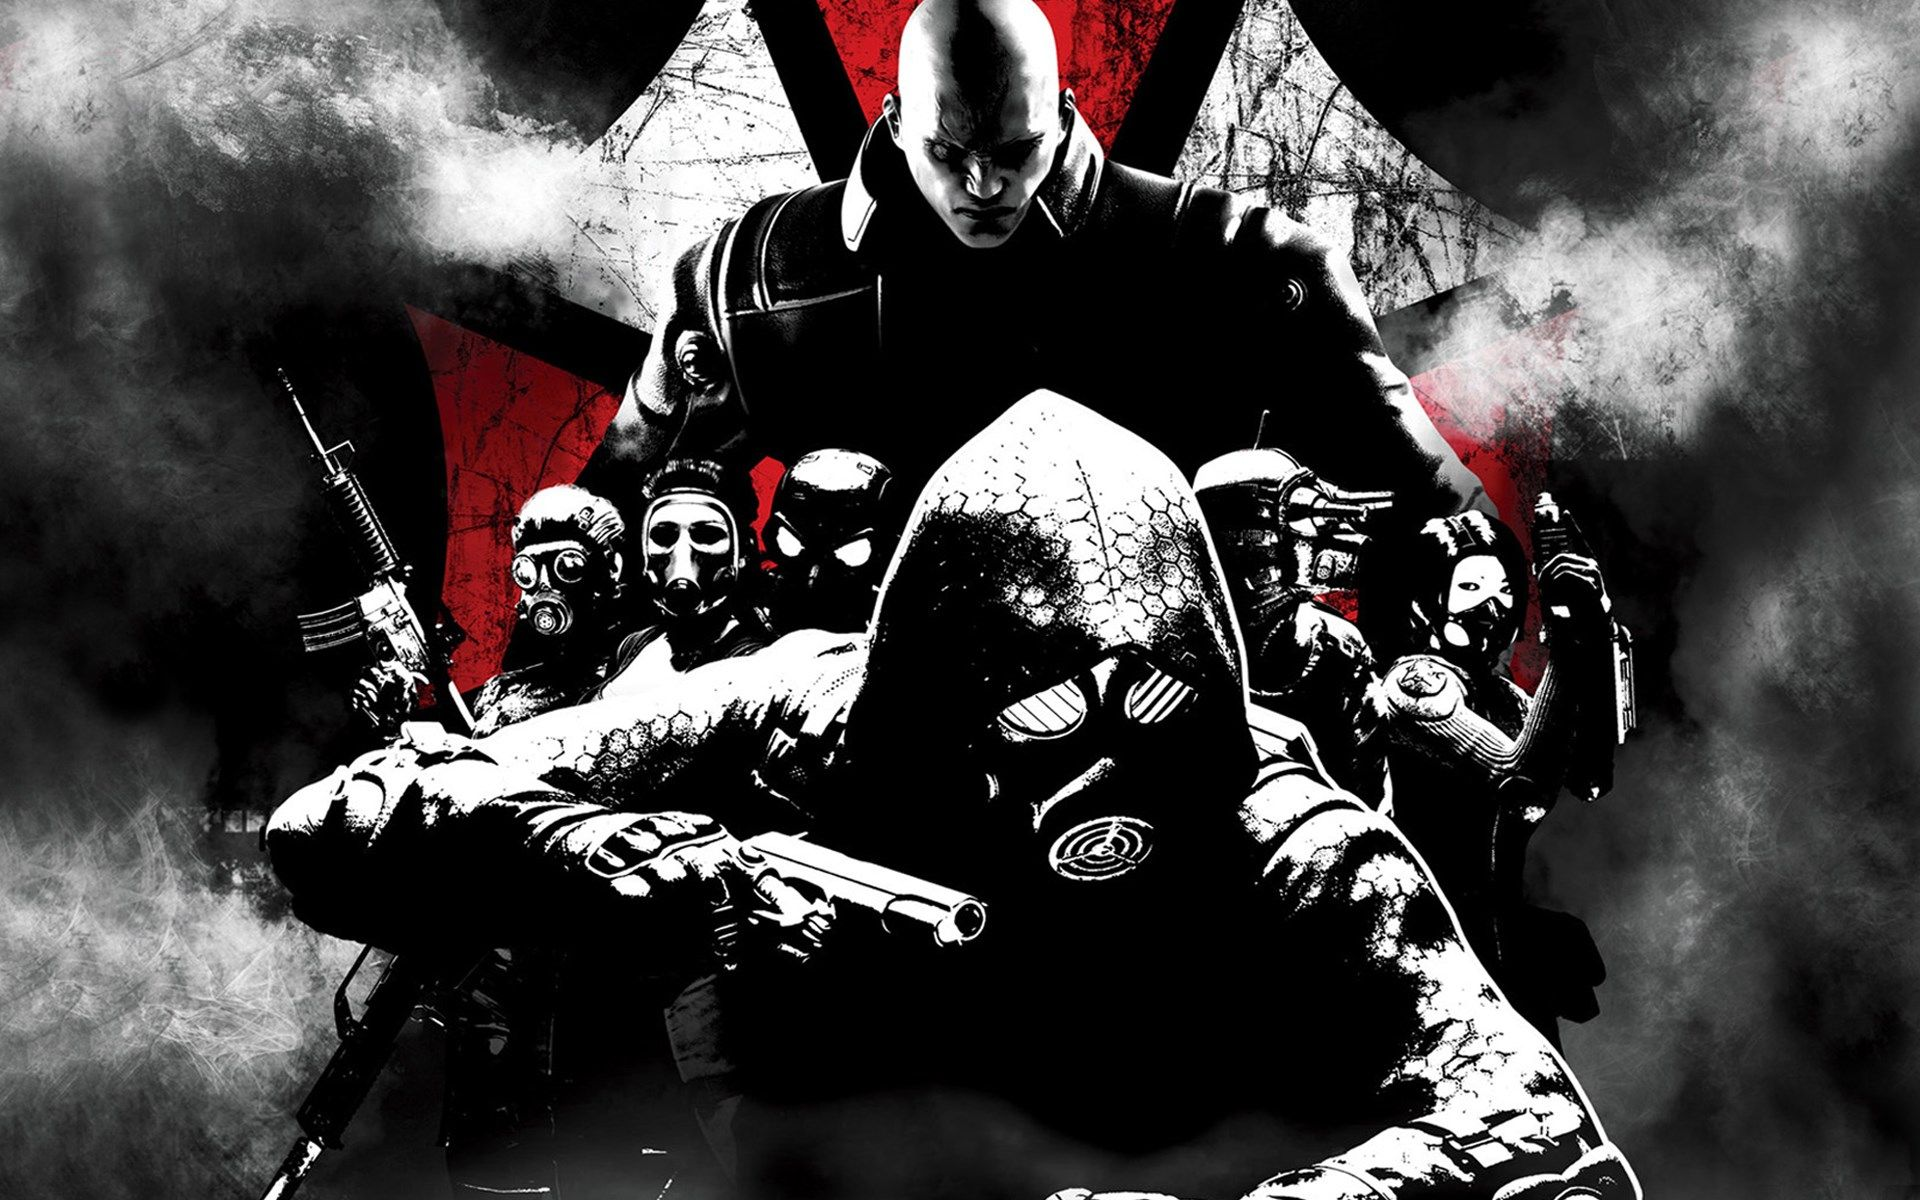 1920x1200 Resident Evil Operation Raccoon City Game Wallpaper Operation Raccoon City Resident Evil Resident Evil Game